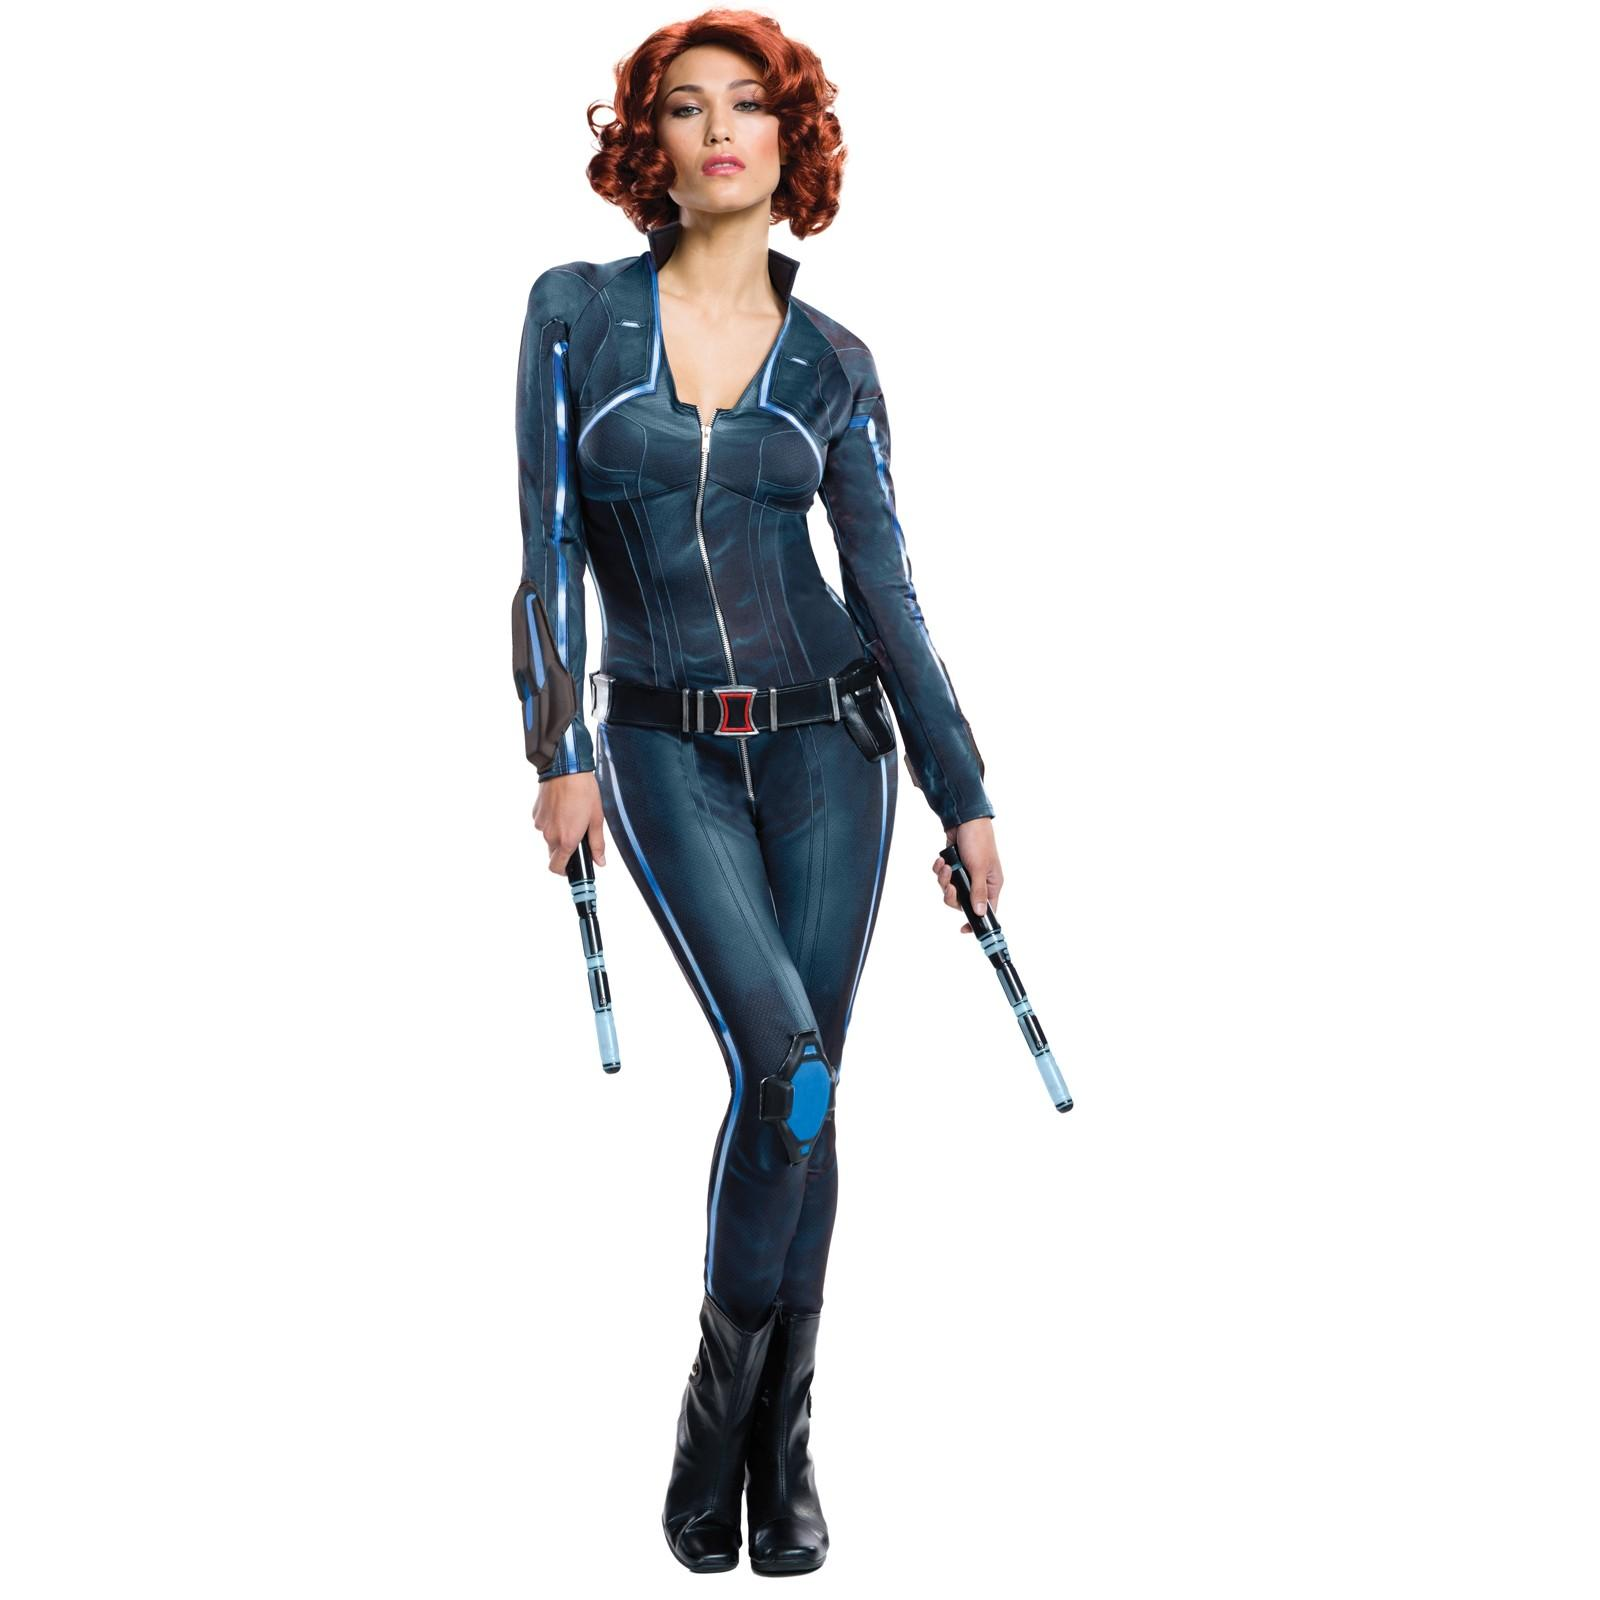 secret-wishes-womens-avengers-2-age-of-ultron-black-widow-costume